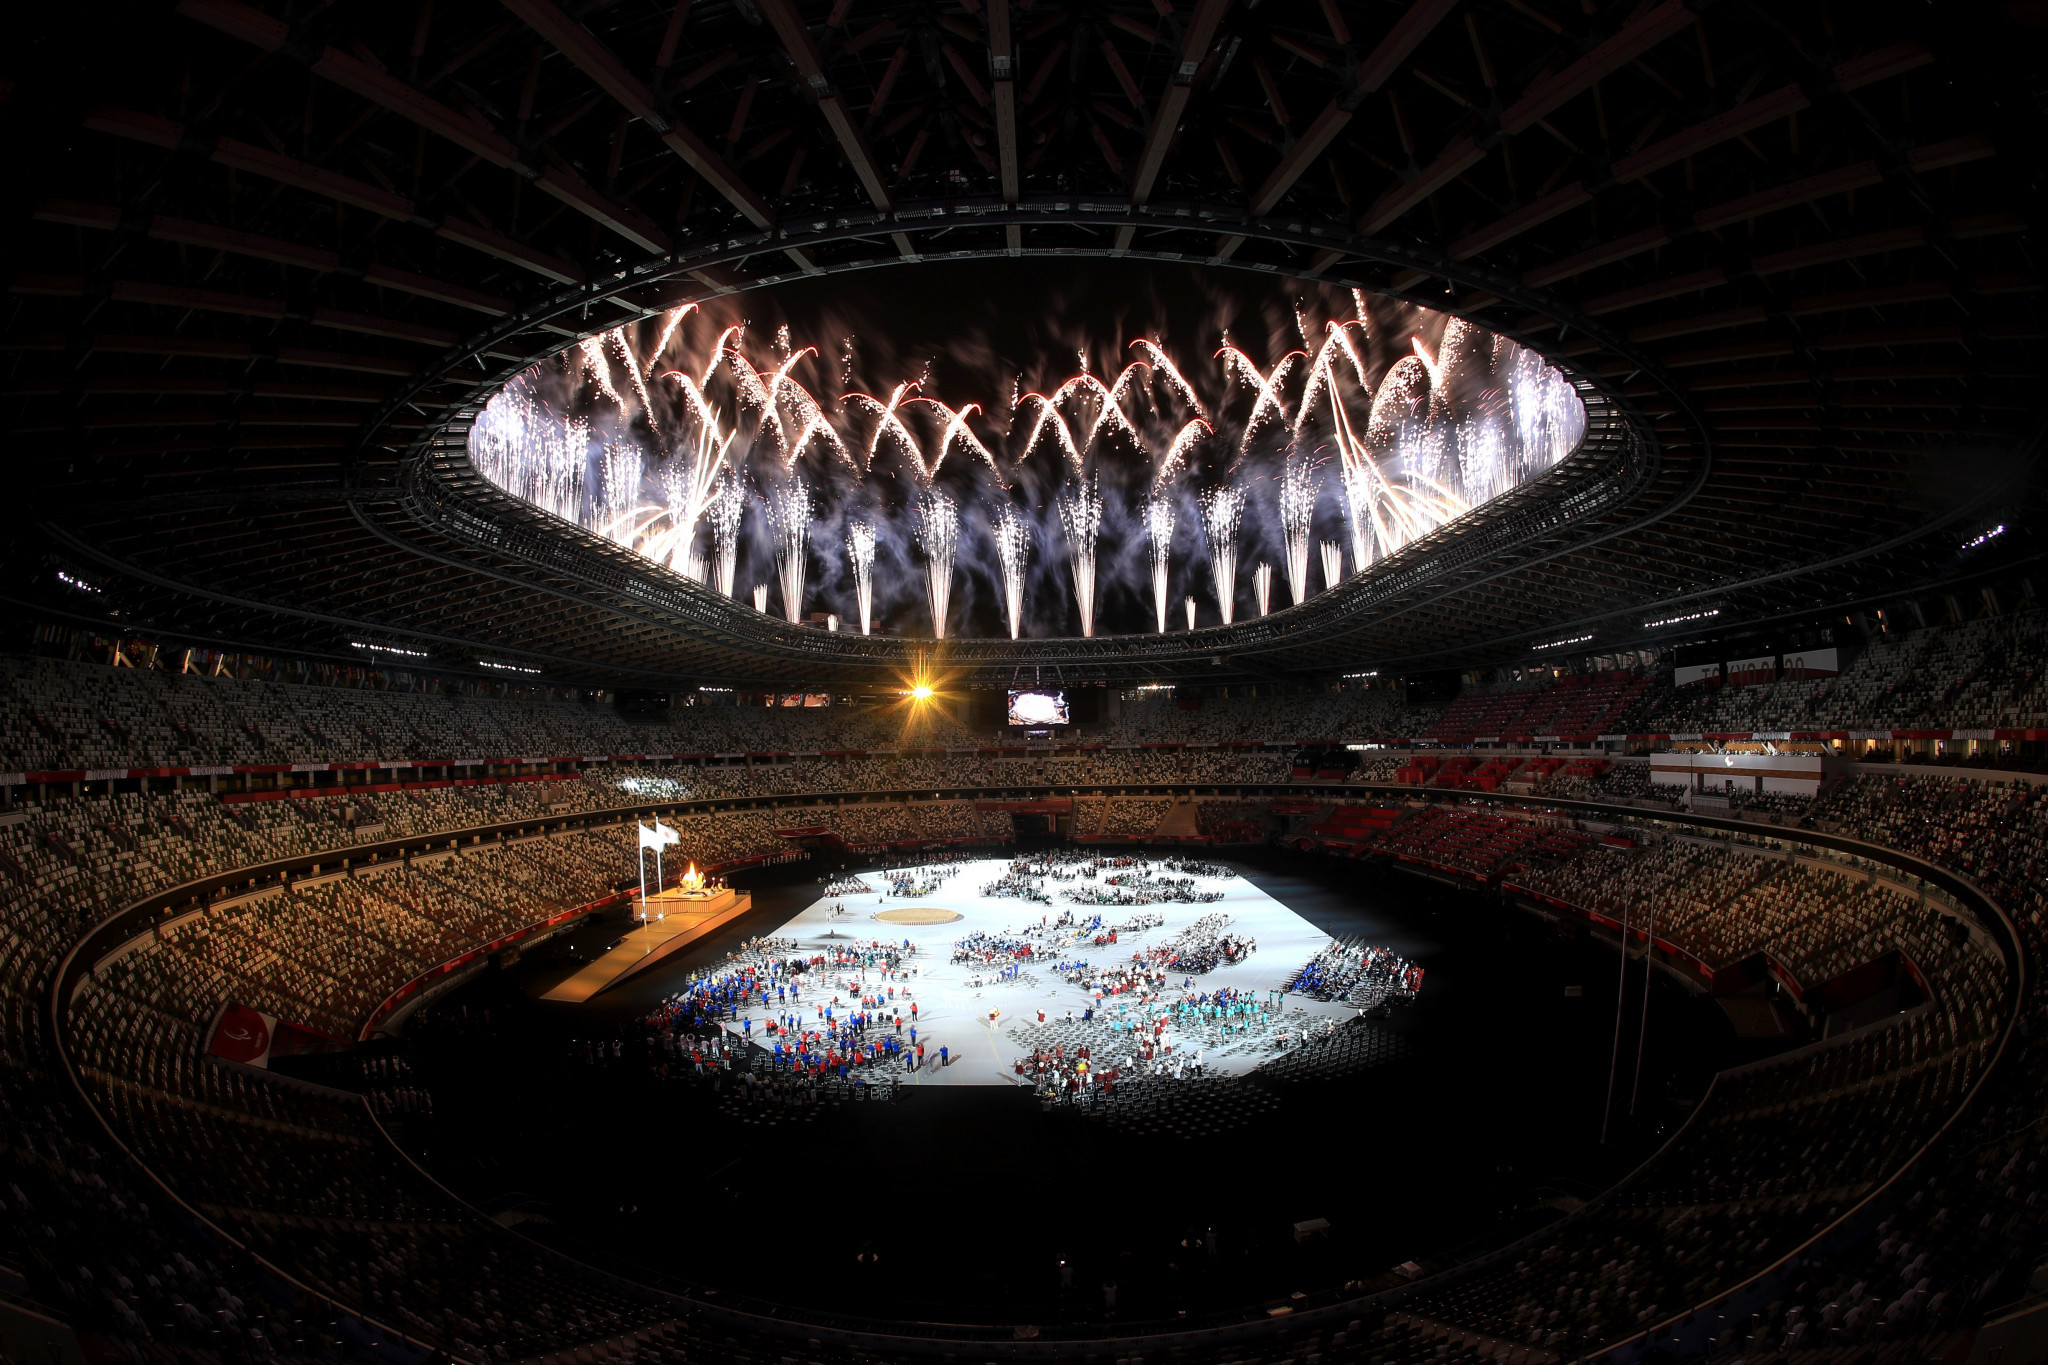 The Tokyo 2020 Paralympics were opened yesterday but organisers are battling to reduce the spread of COVID-19 ©Getty Images